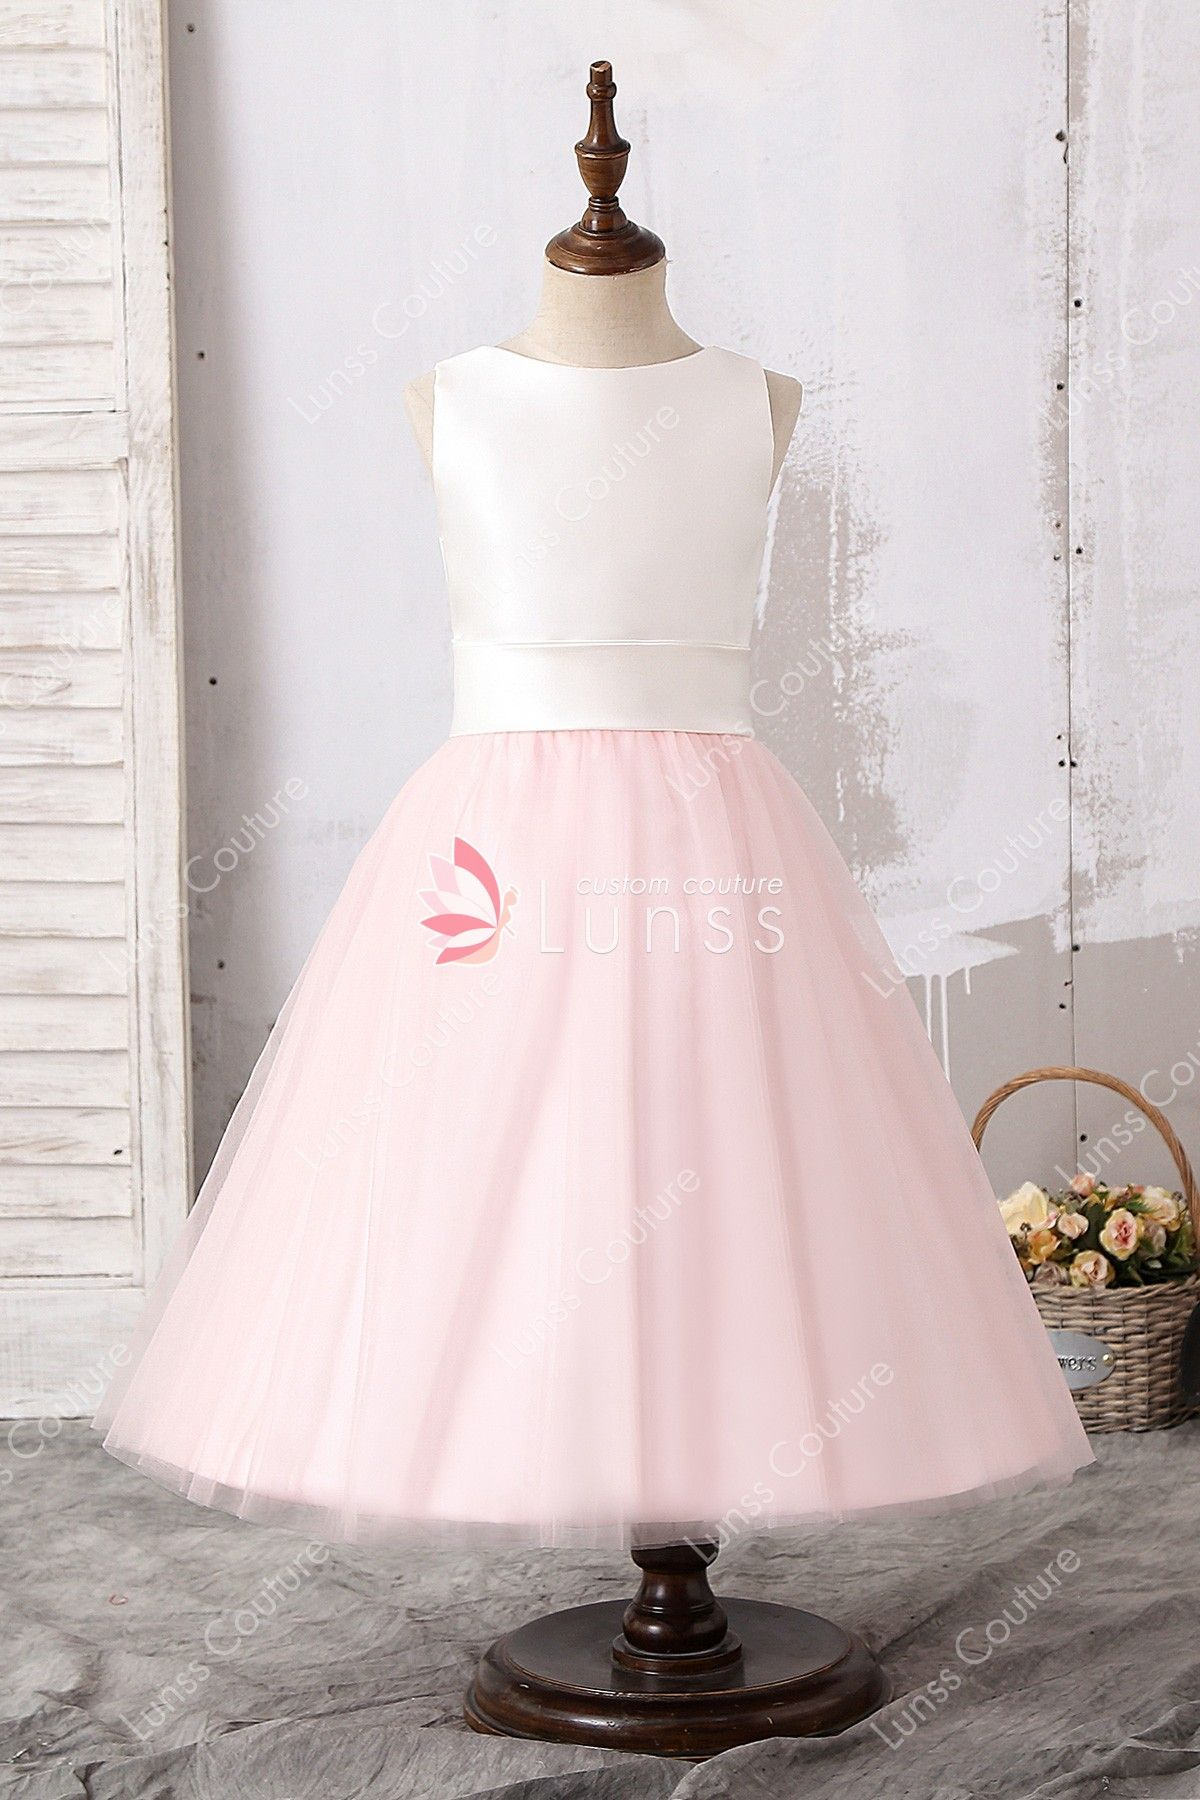 d6b22b99489 This adorable two-tone tea-length flower girl dress comes with ivory soft  satin tank bodice and light pink puffy tulle skirt with a detachable ribbon.